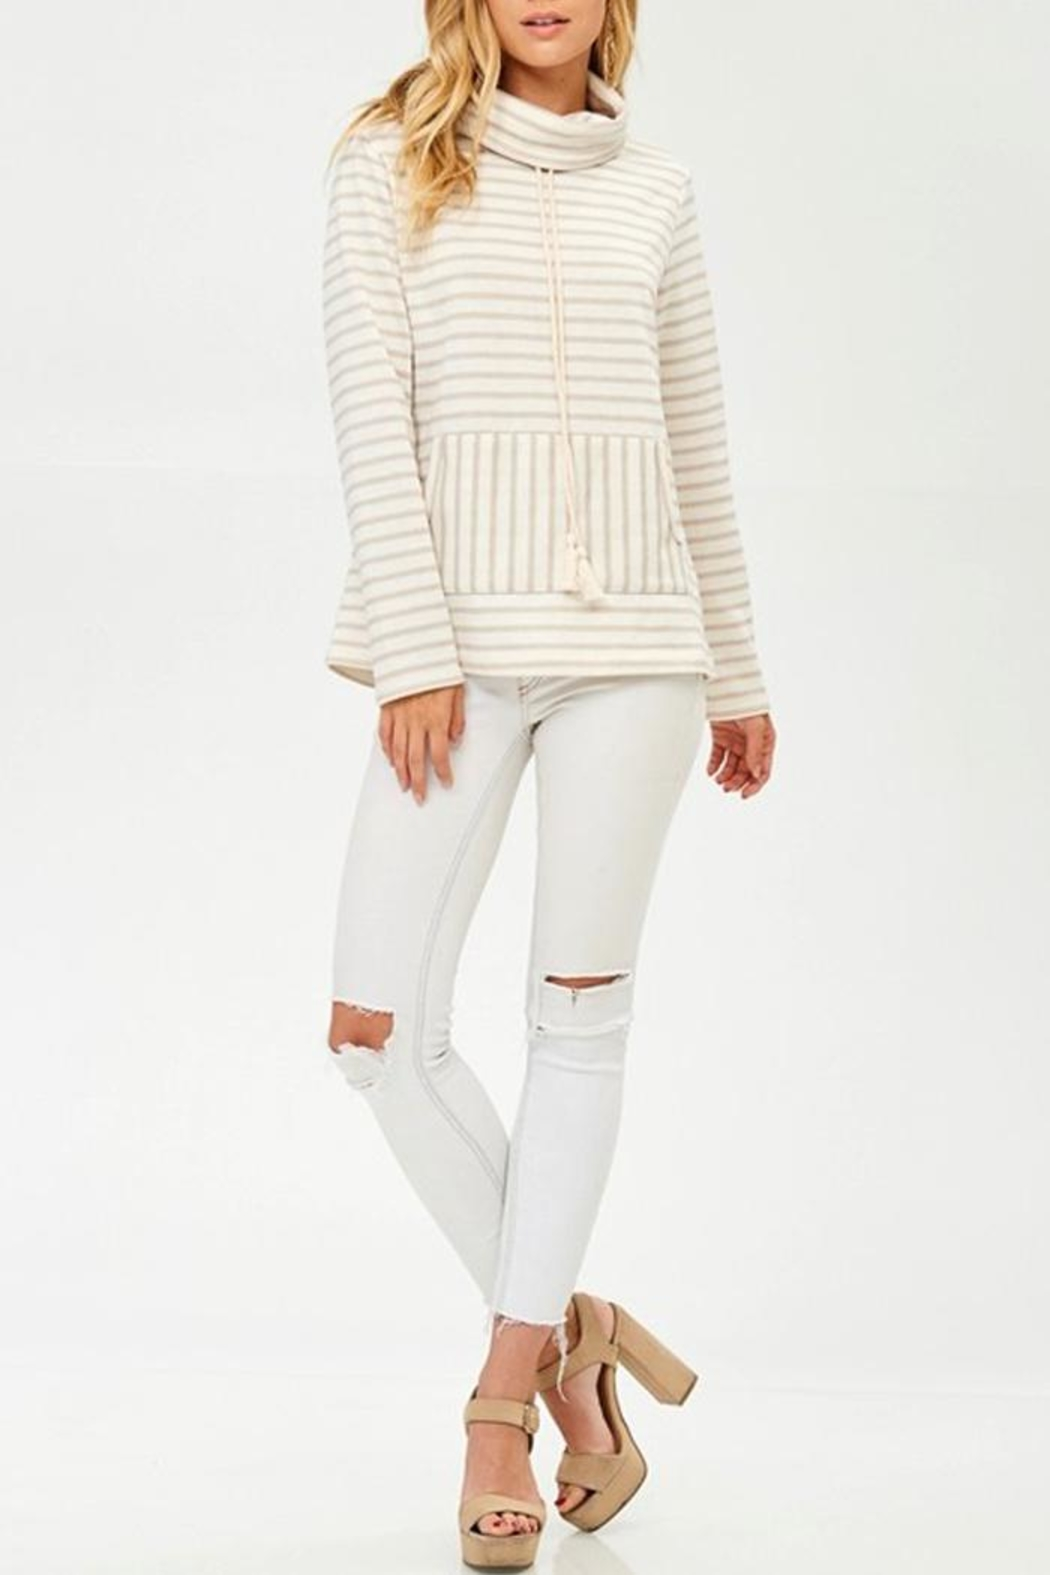 Hailey & Co Winter White Sweatshirt - Main Image